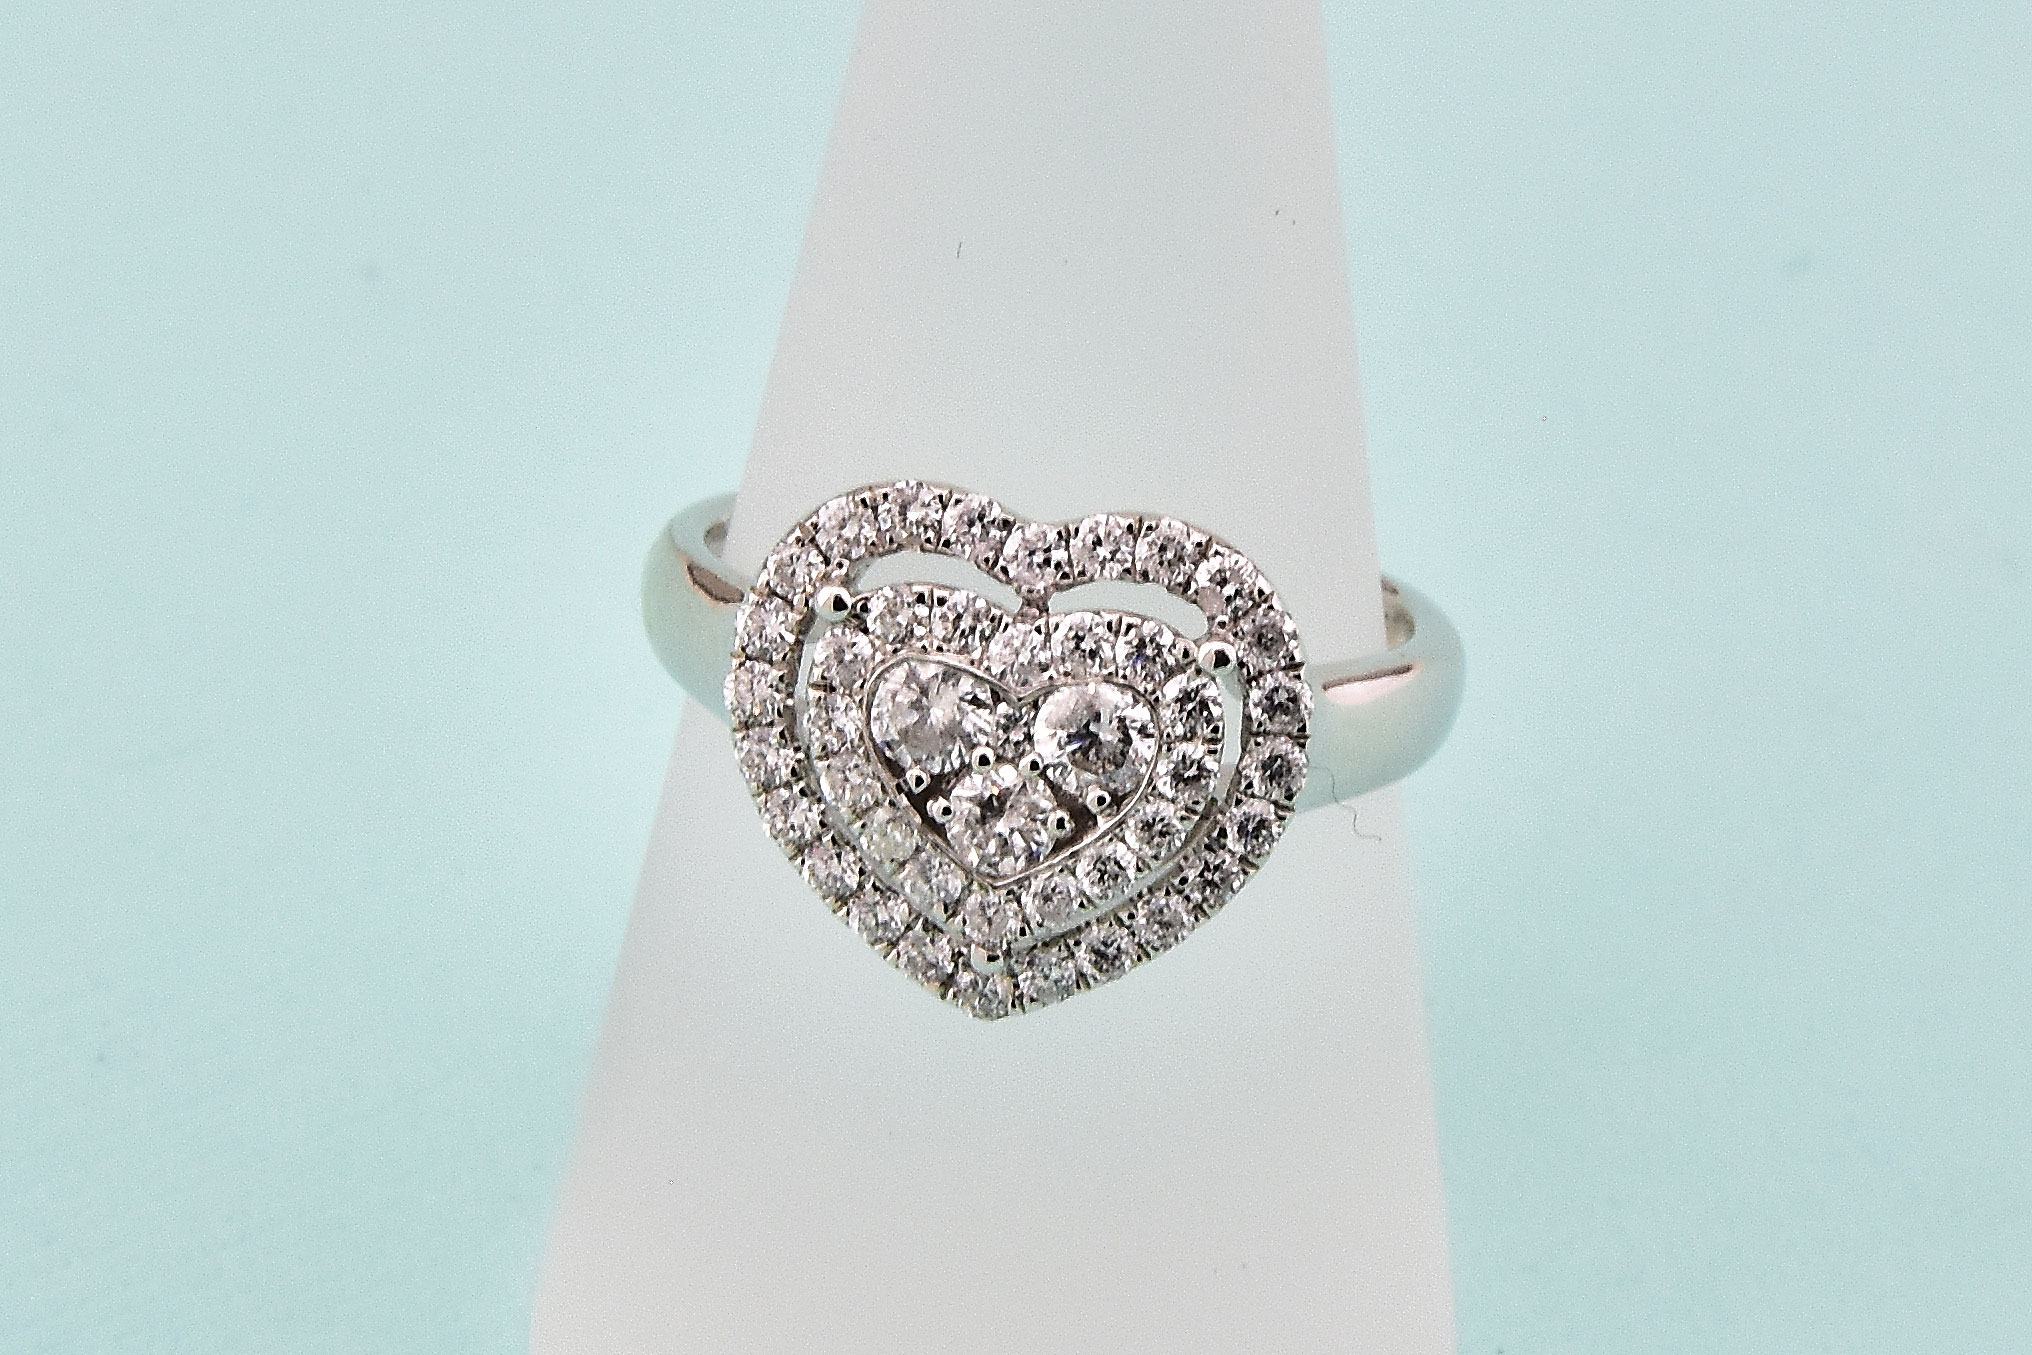 Almost 1 Carat Total Weight Diamond Heart Shape Ring